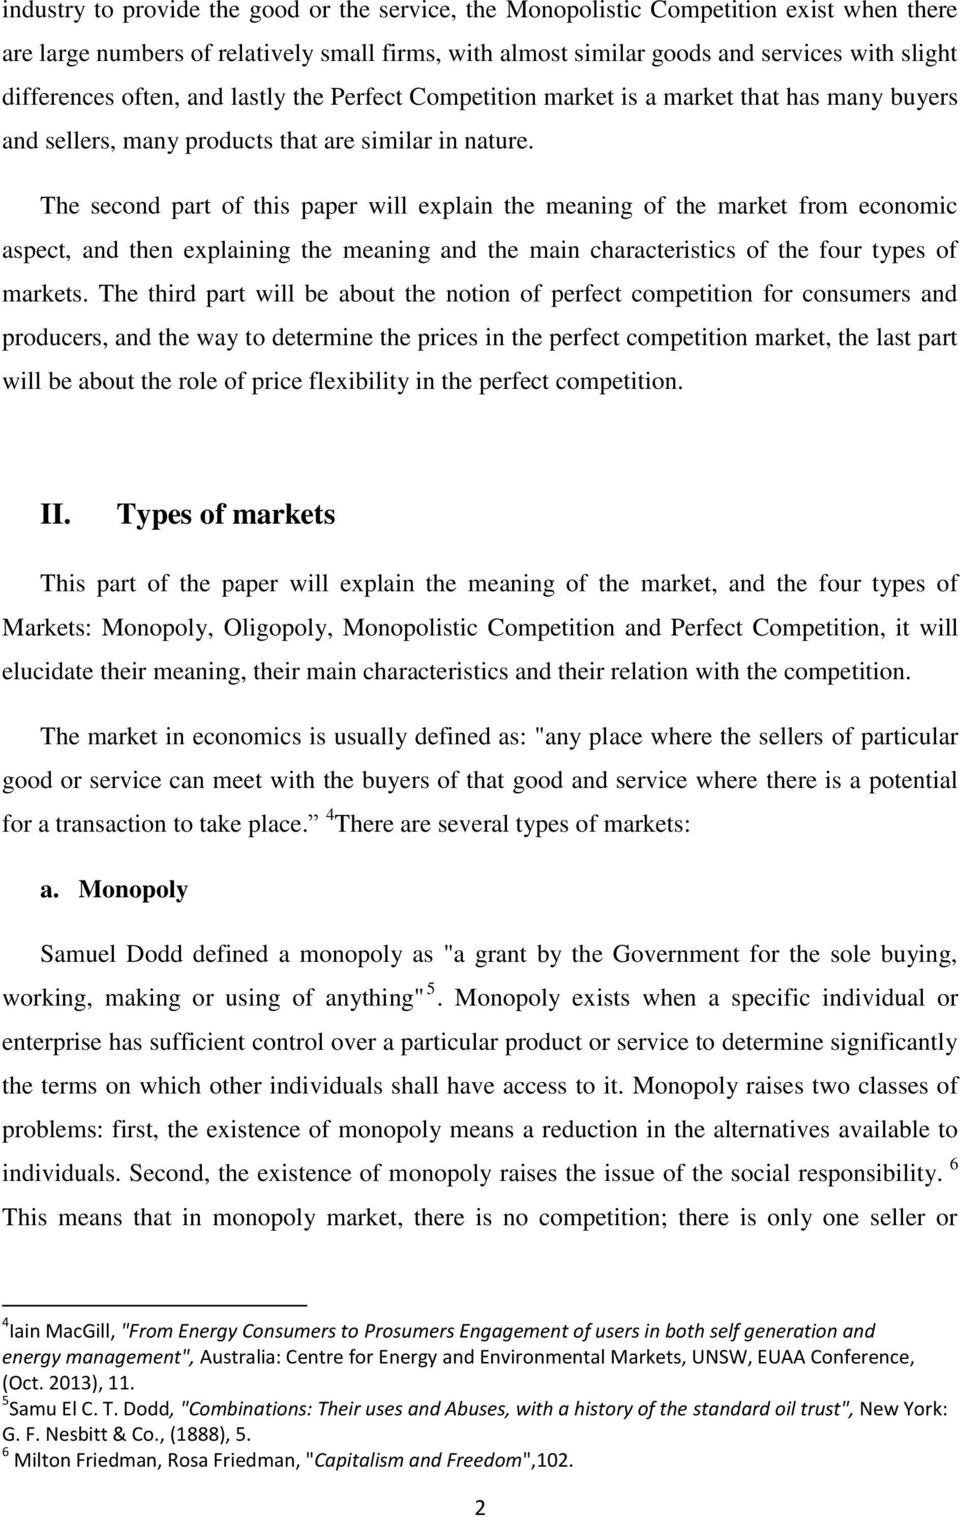 The second part of this paper will explain the meaning of the market from economic aspect, and then explaining the meaning and the main characteristics of the four types of markets.